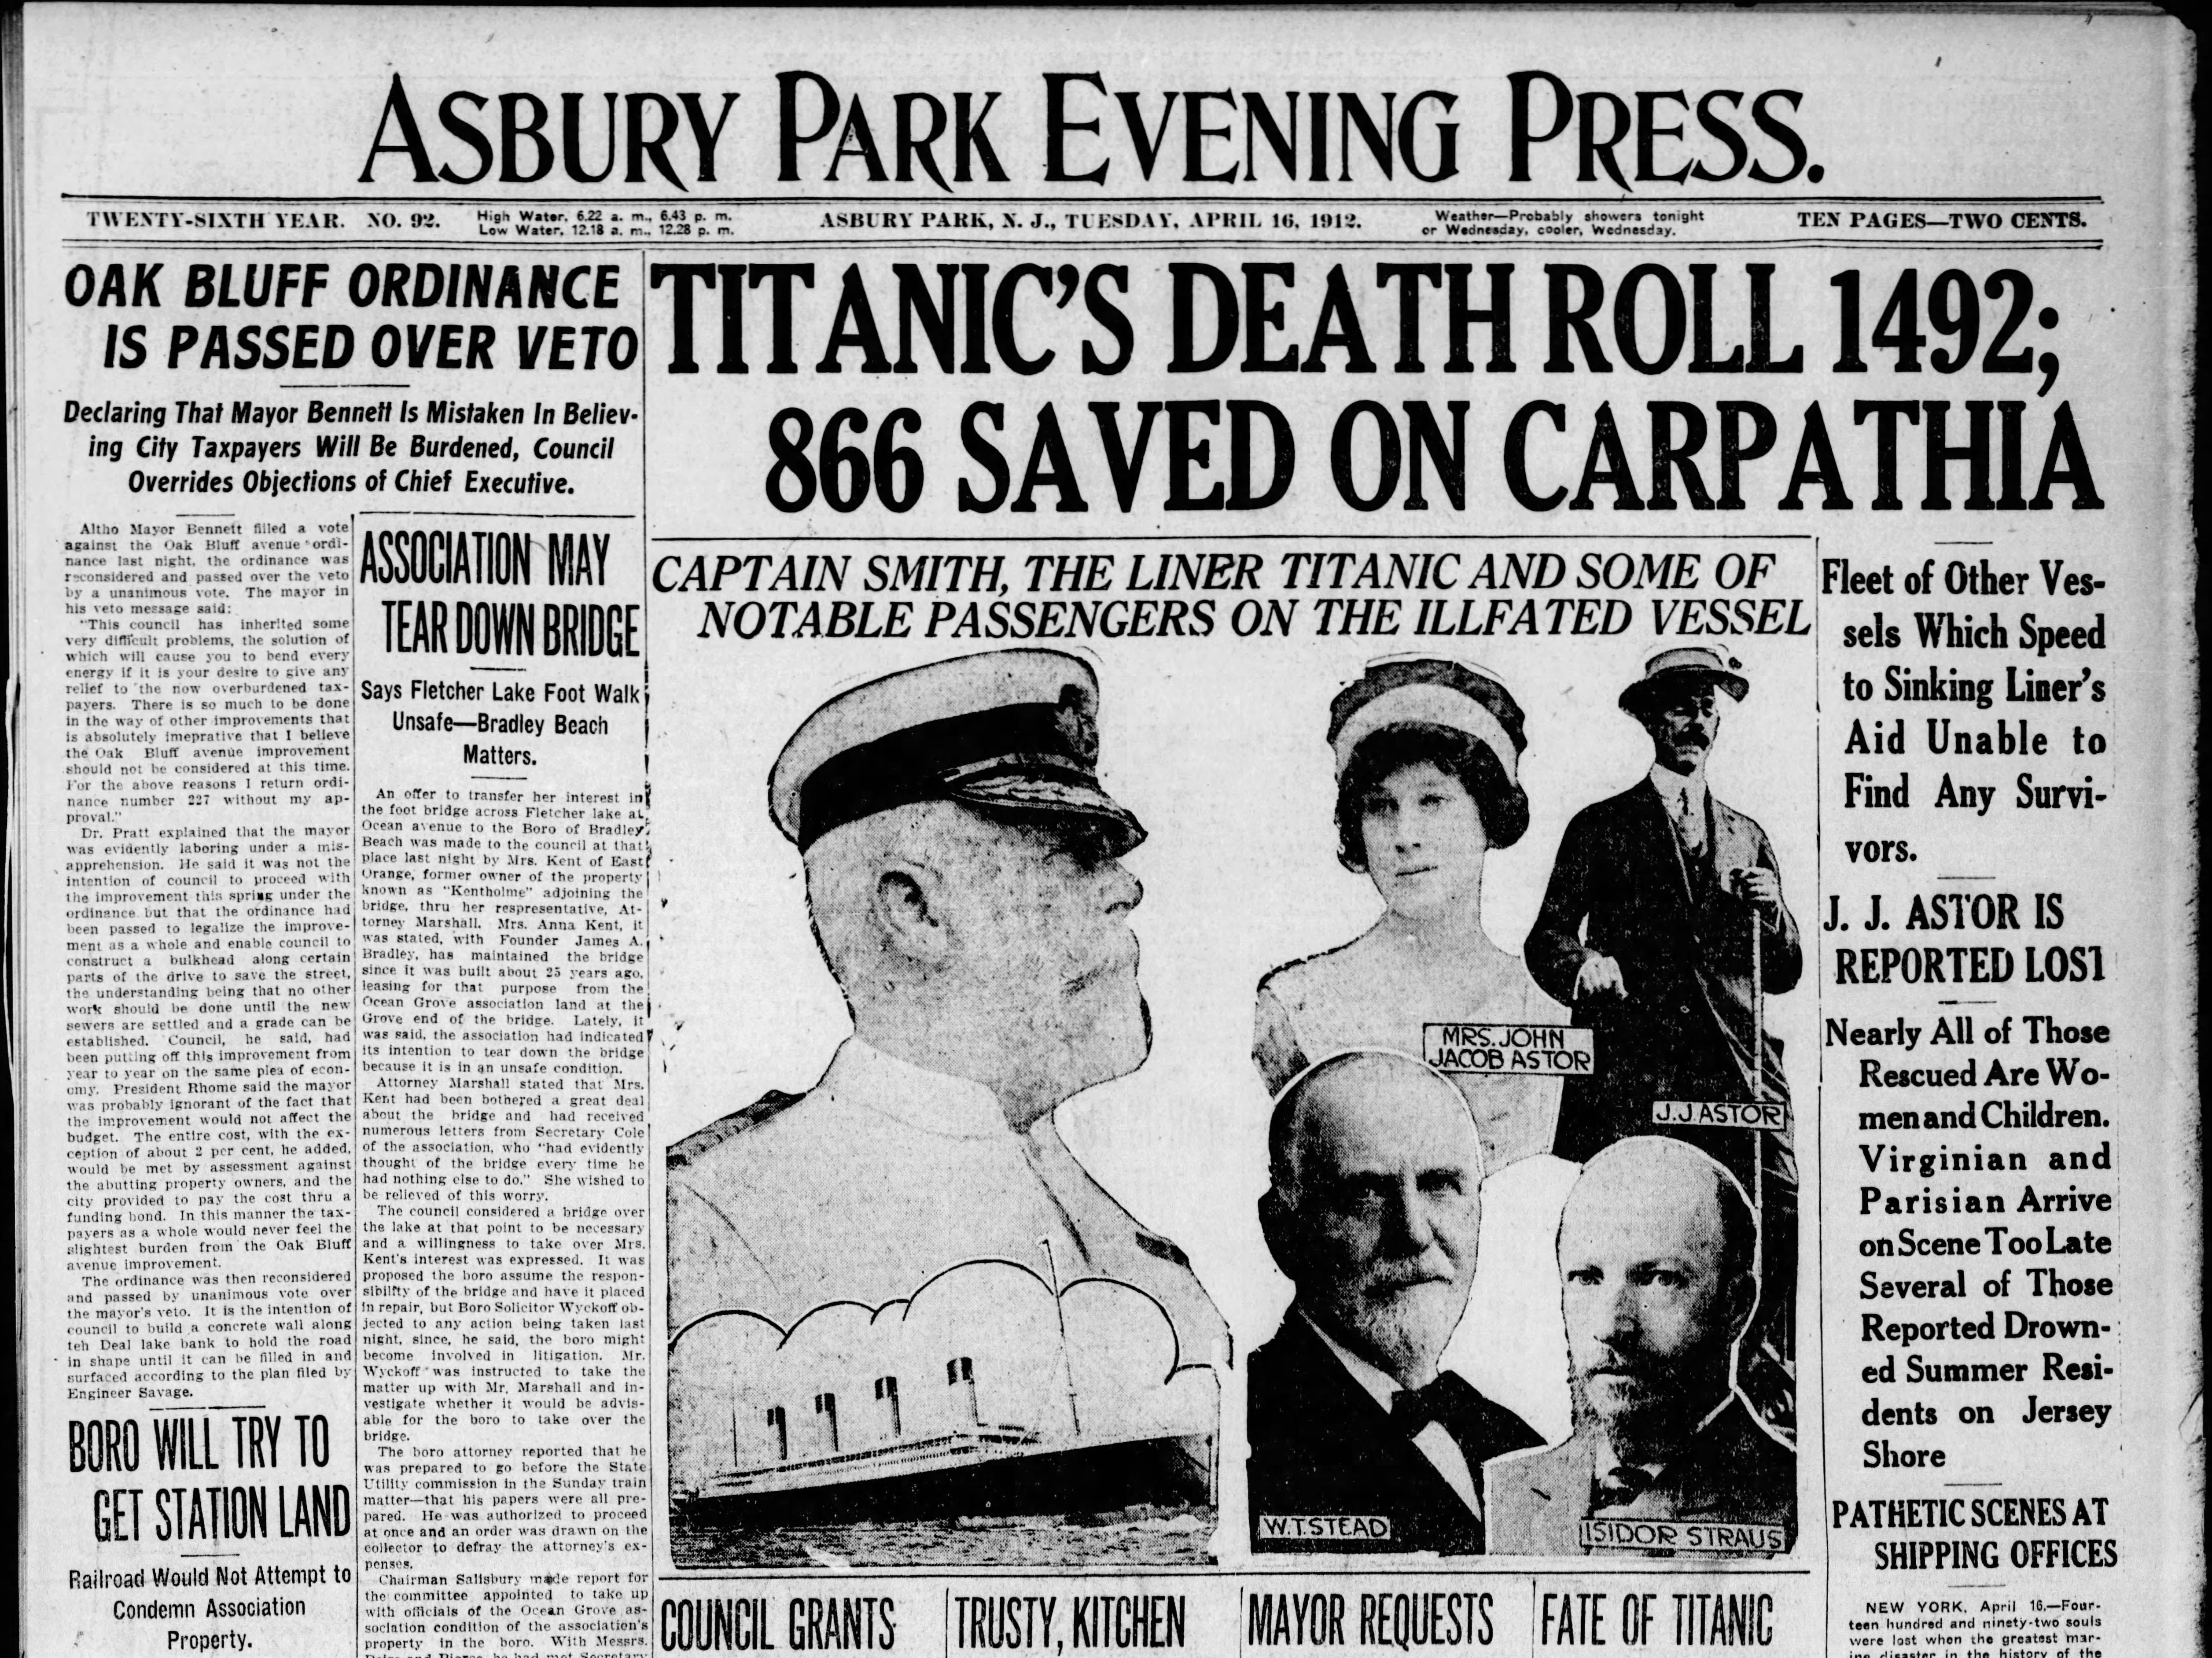 The Asbury Park Press reports on the epic tragedy of the RMS Titanic disaster on Tuesday, April 16, 1912, one day after the passenger liner sinks in the North Atlantic while en route to New York from Europe on its maiden voyage.